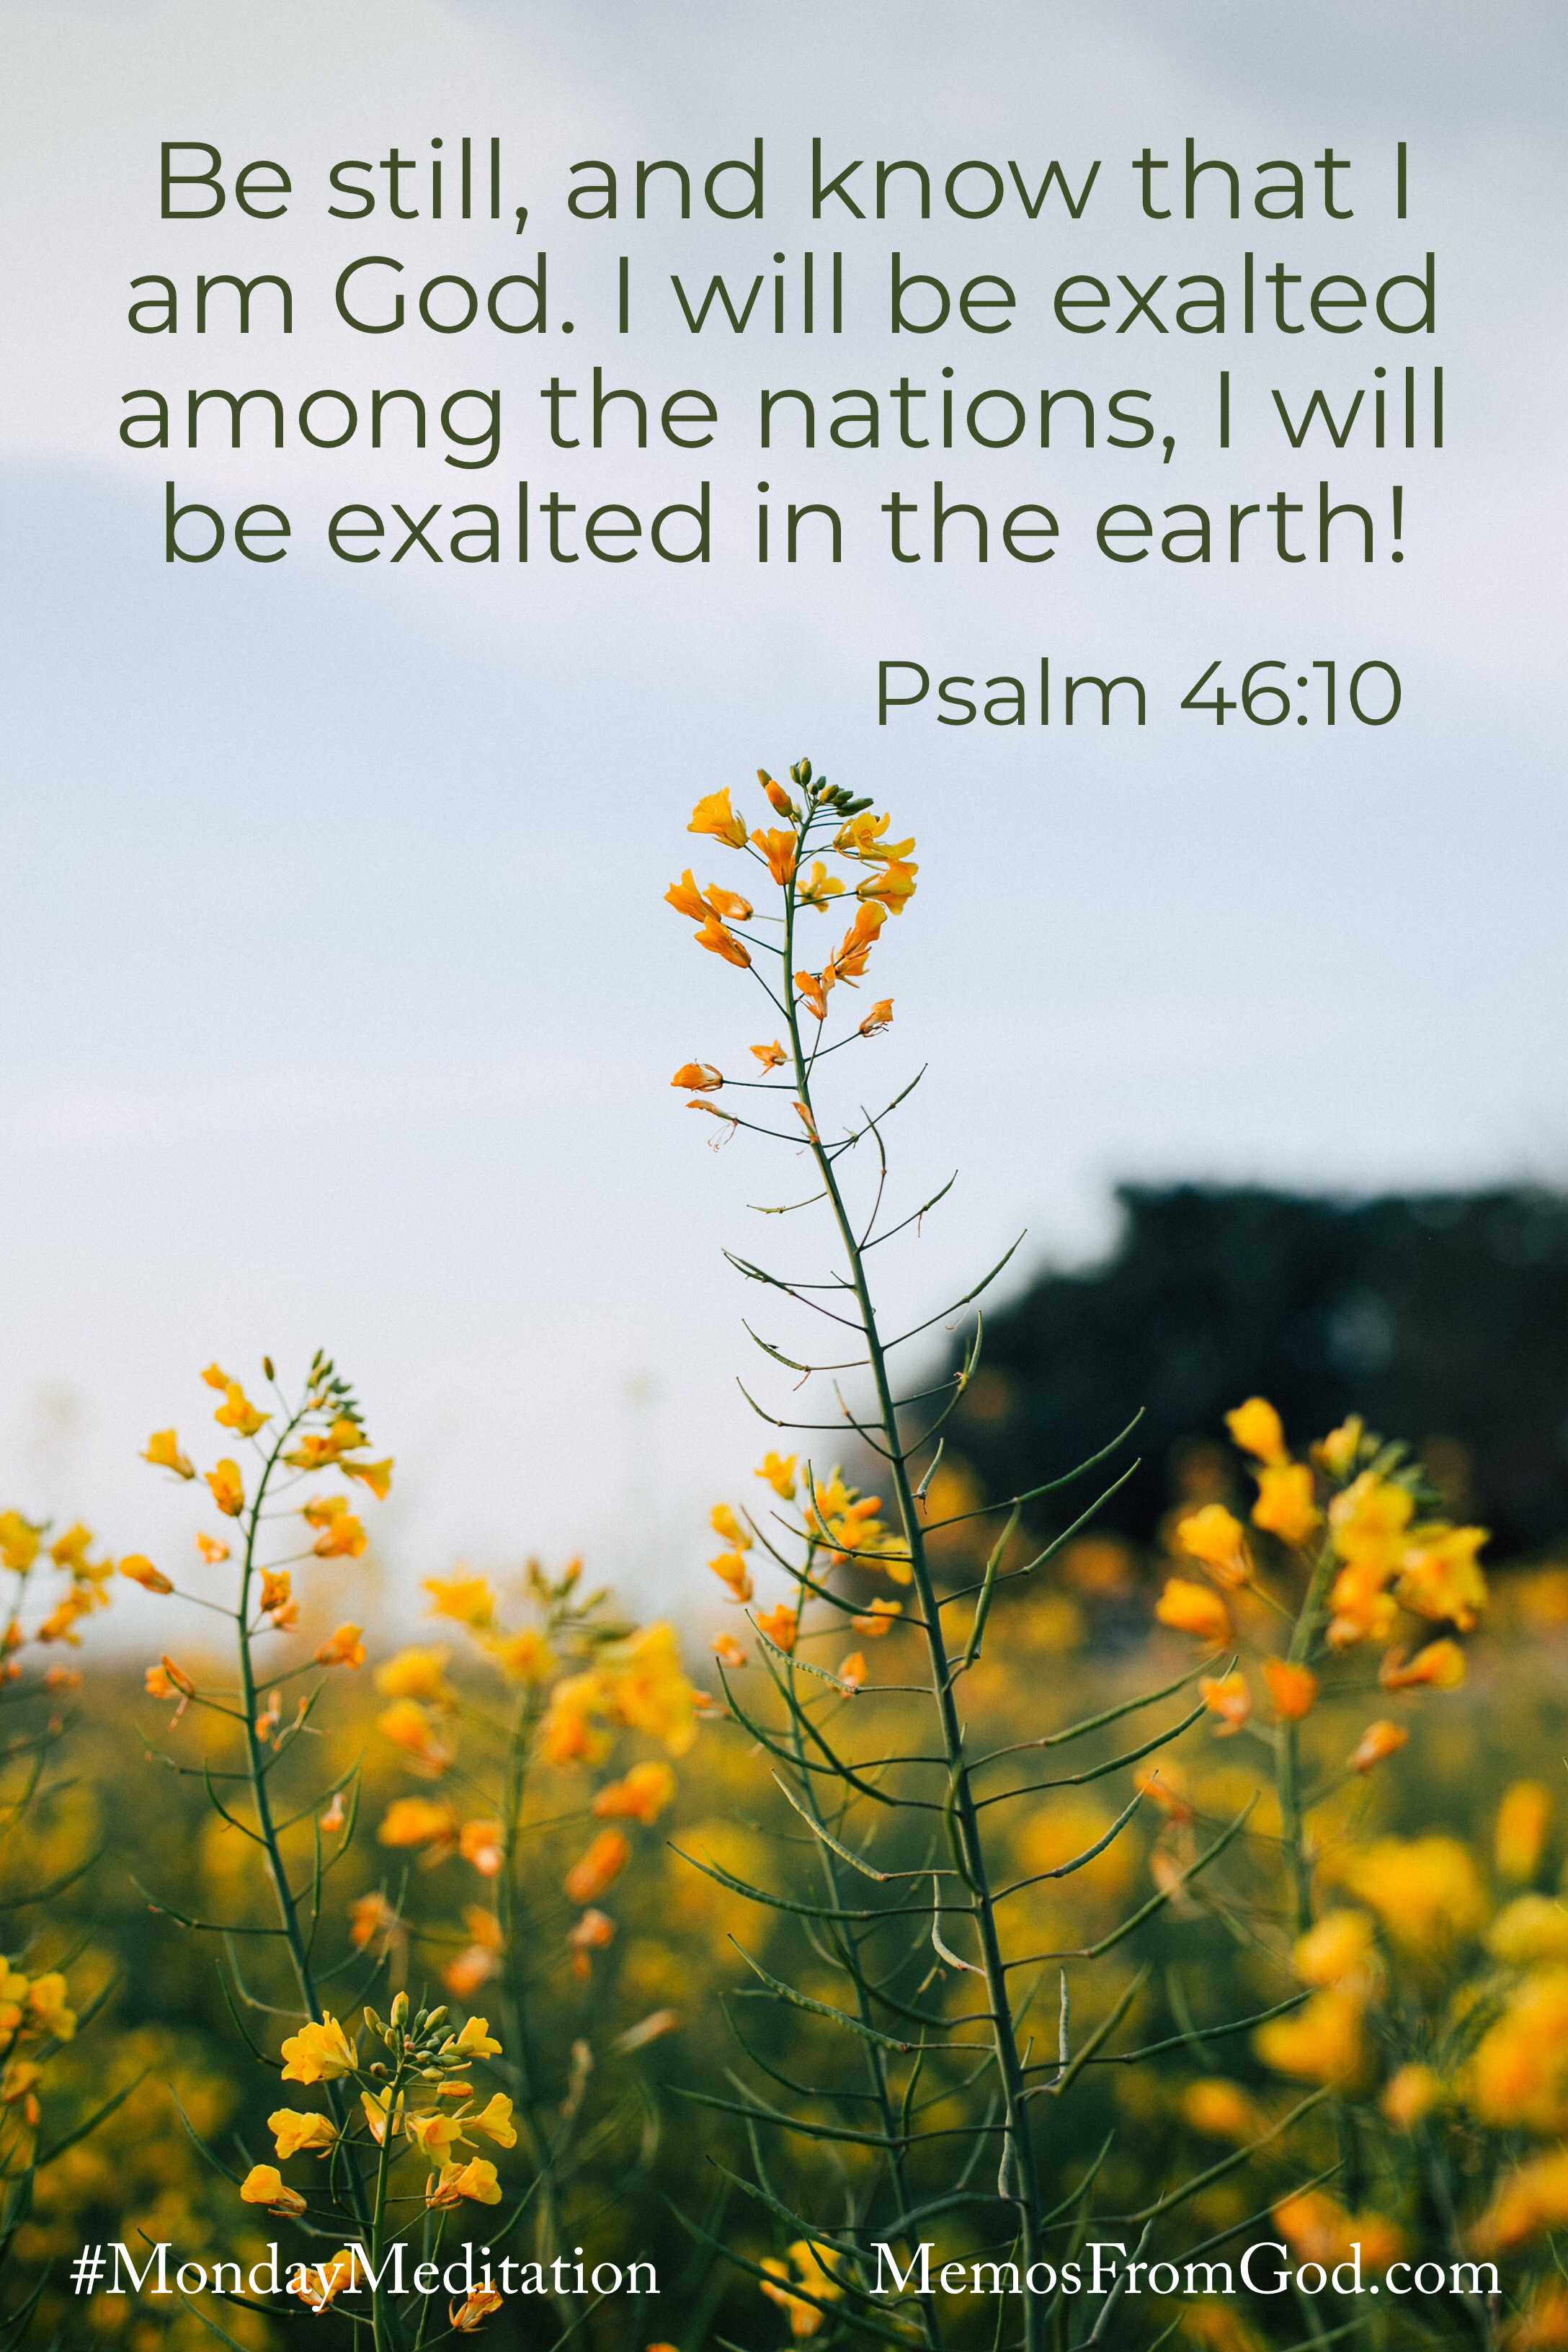 A single stalk of small yellow flowers rising above the rest, against a cloudless grey sky. Caption: Be still, and know that I am God. I will be exalted among the nations, I will be exalted in the earth! Psalm 46:10